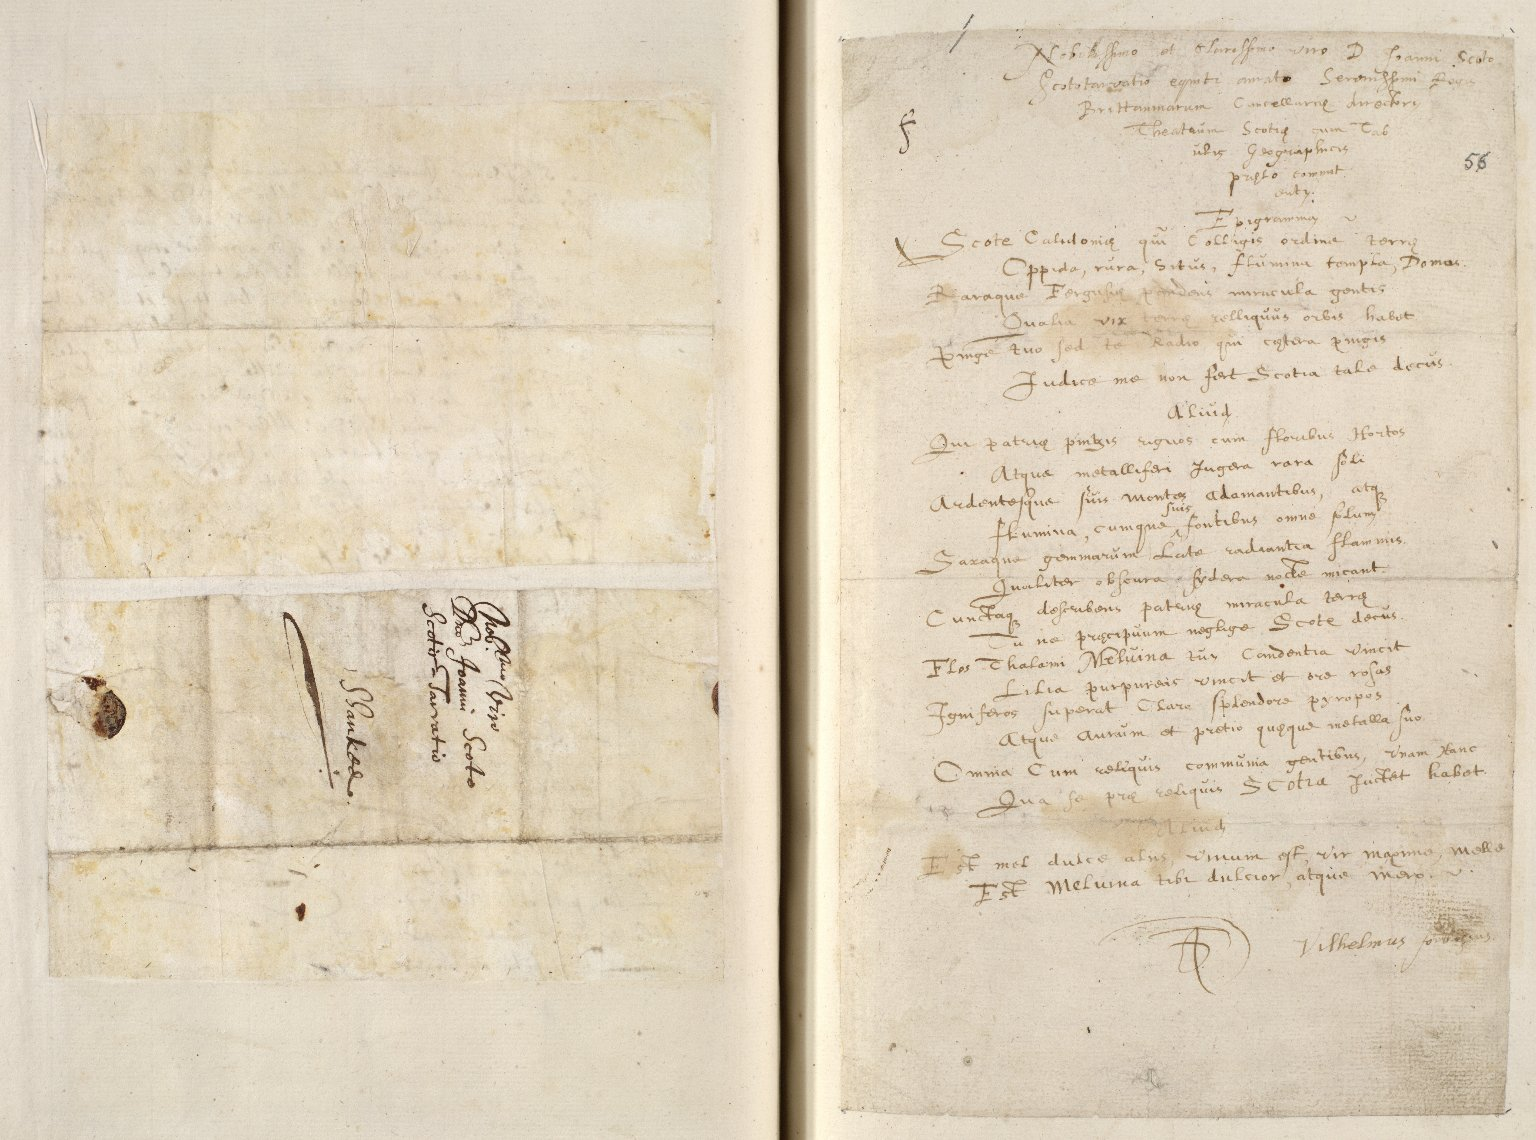 [A collection of ALS to Sir John Scot, Lord Scotstarvet, from W.J. and Joan Blaeu, Amsterdam] [07 of 27]